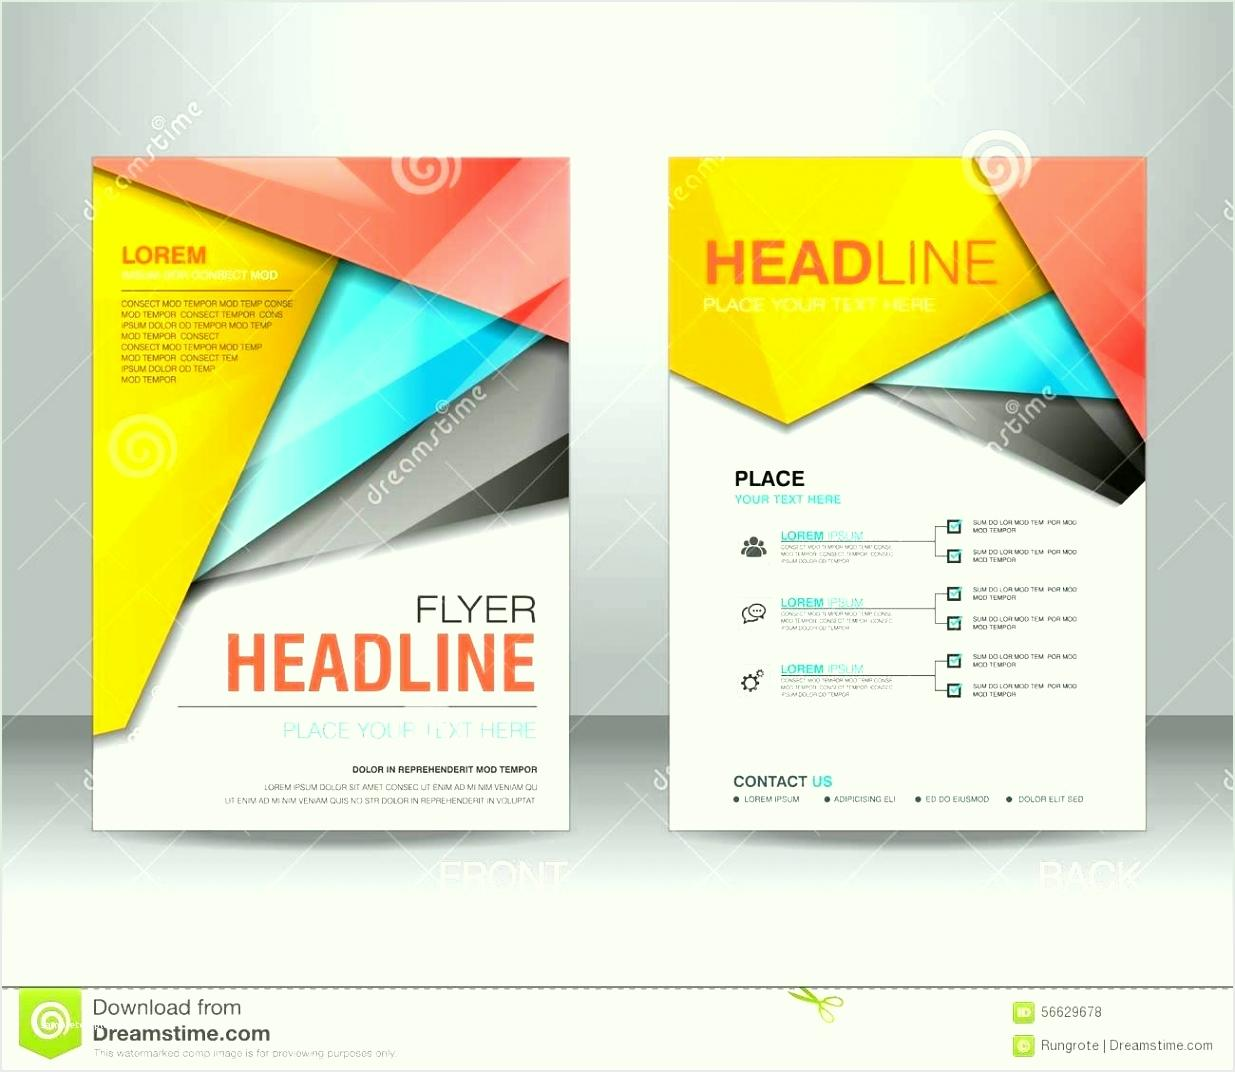 Free Flyer Templates For Word 2003